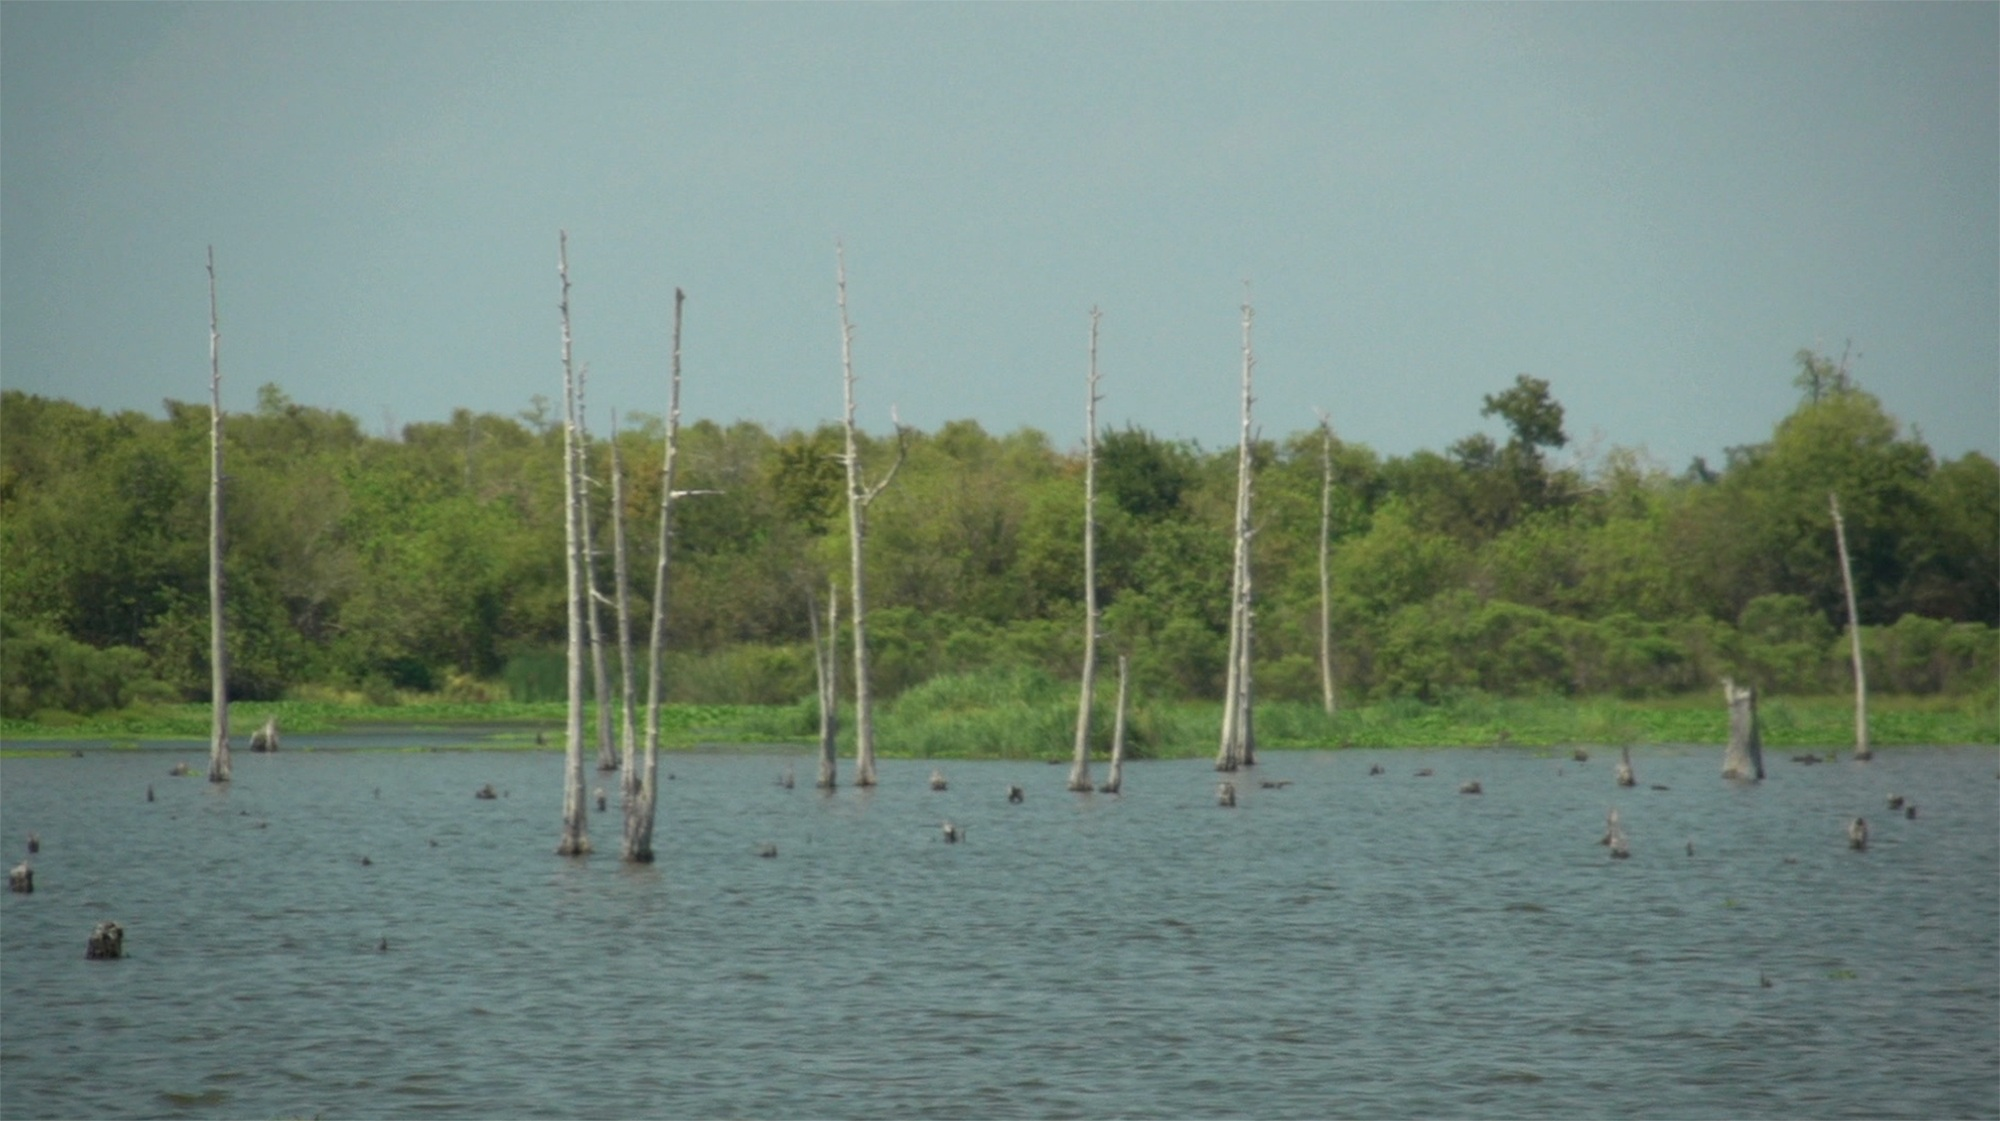 Meet the group restoring Louisiana's Wetlands